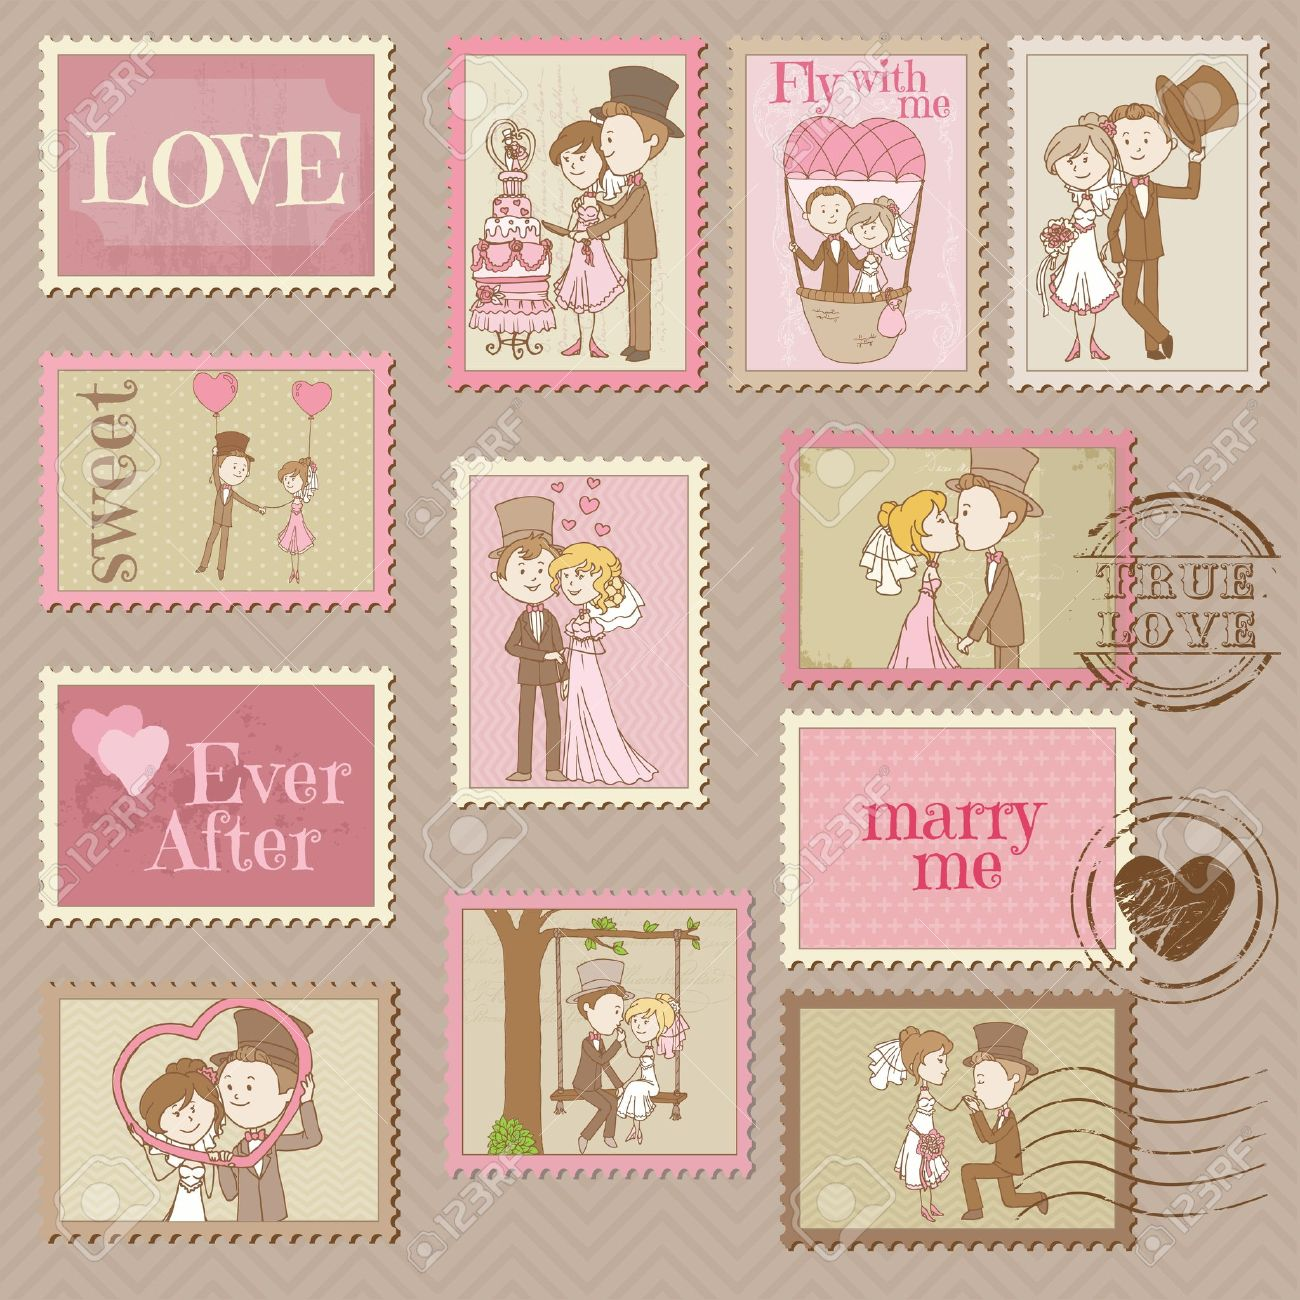 vintage stamps wedding wedding stamps eBay Vintage Stamps for My Wedding Invitations A Practical Wedding We re Your Wedding Planner Wedding Ideas for Brides Bridesmaids Grooms